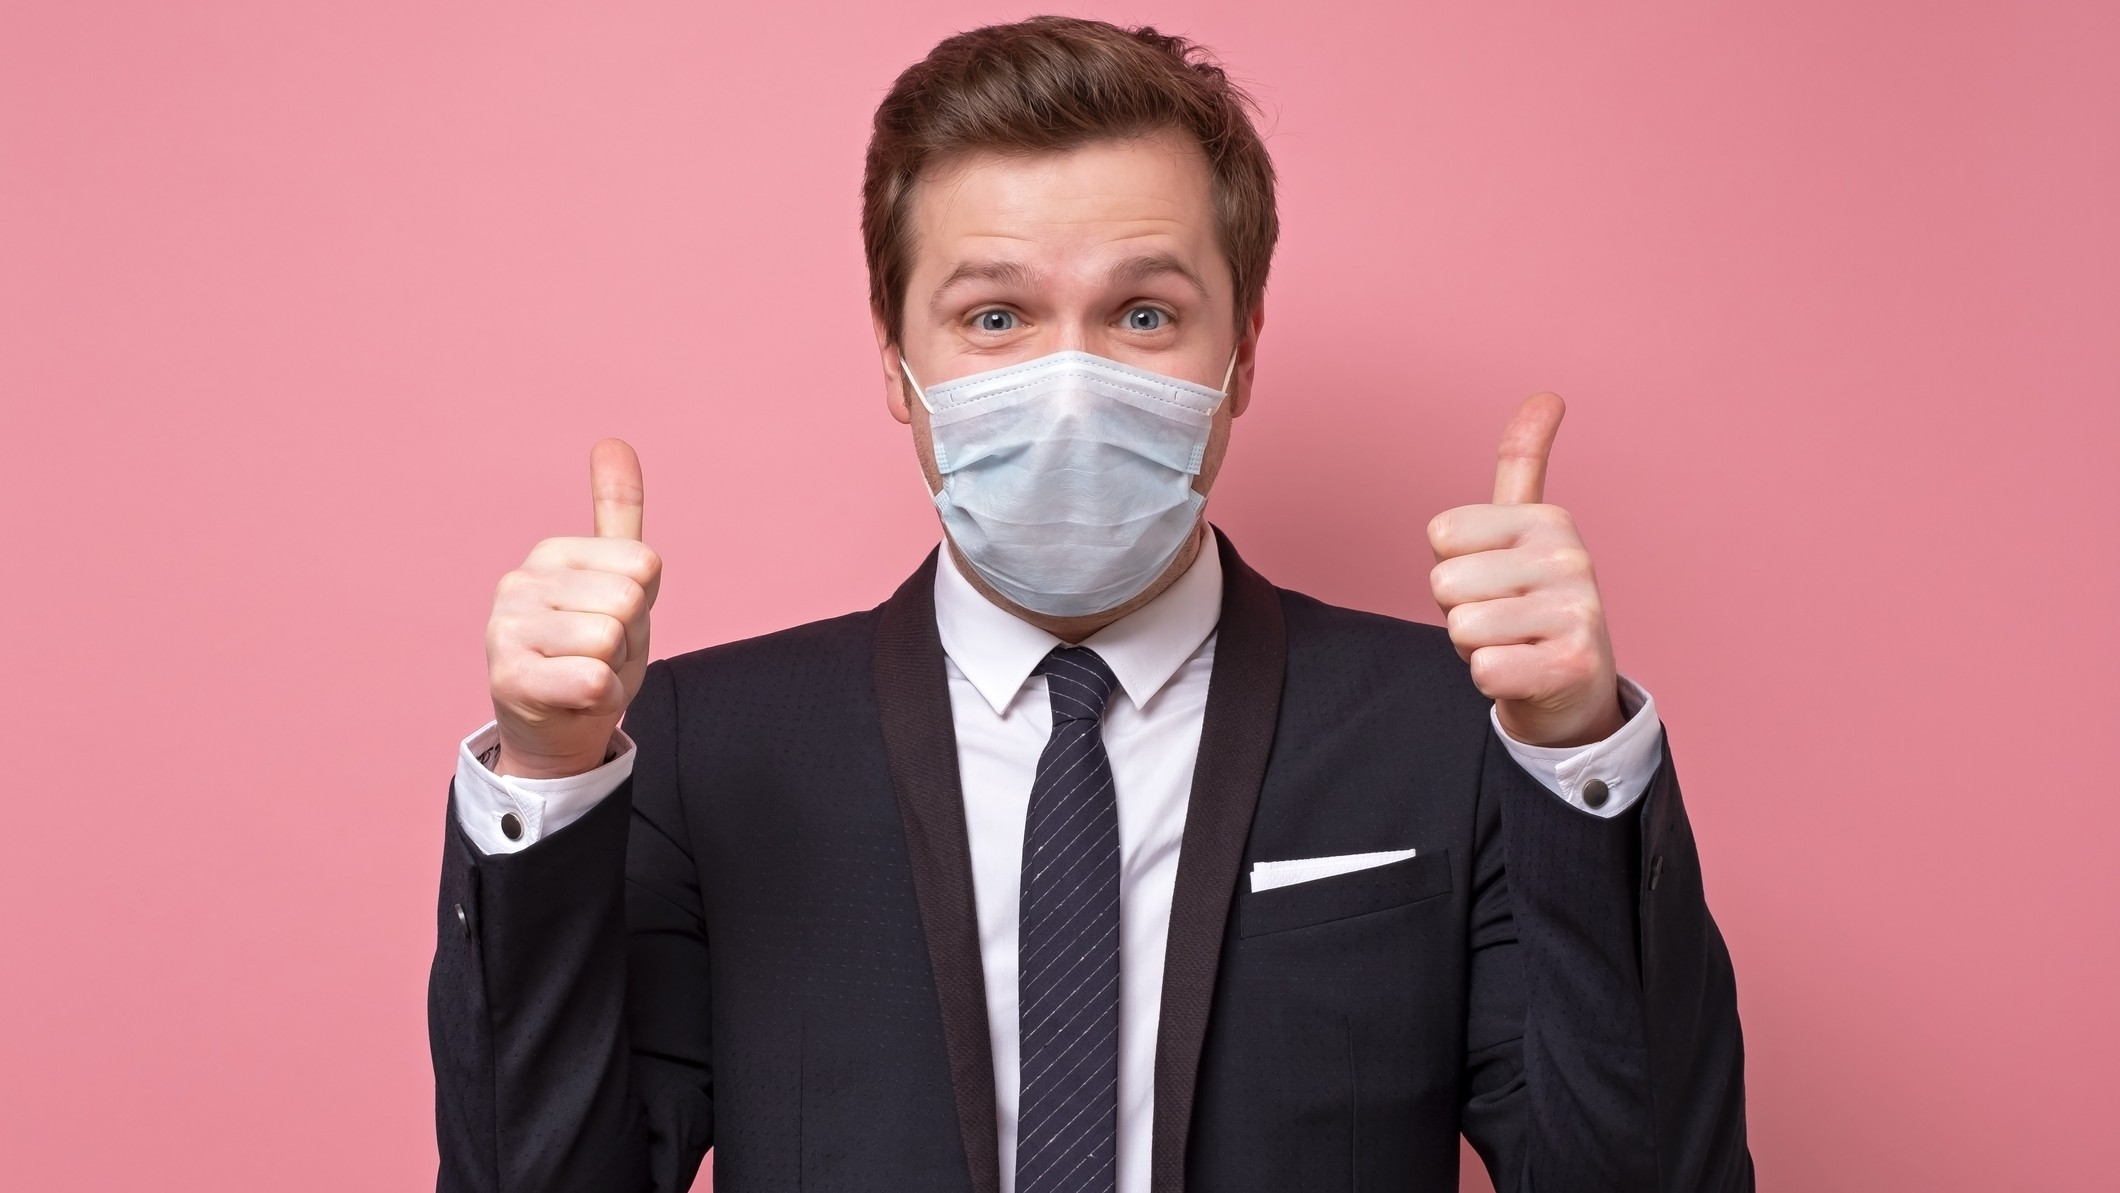 covid asx share price represented by man in face mask giving thumbs up